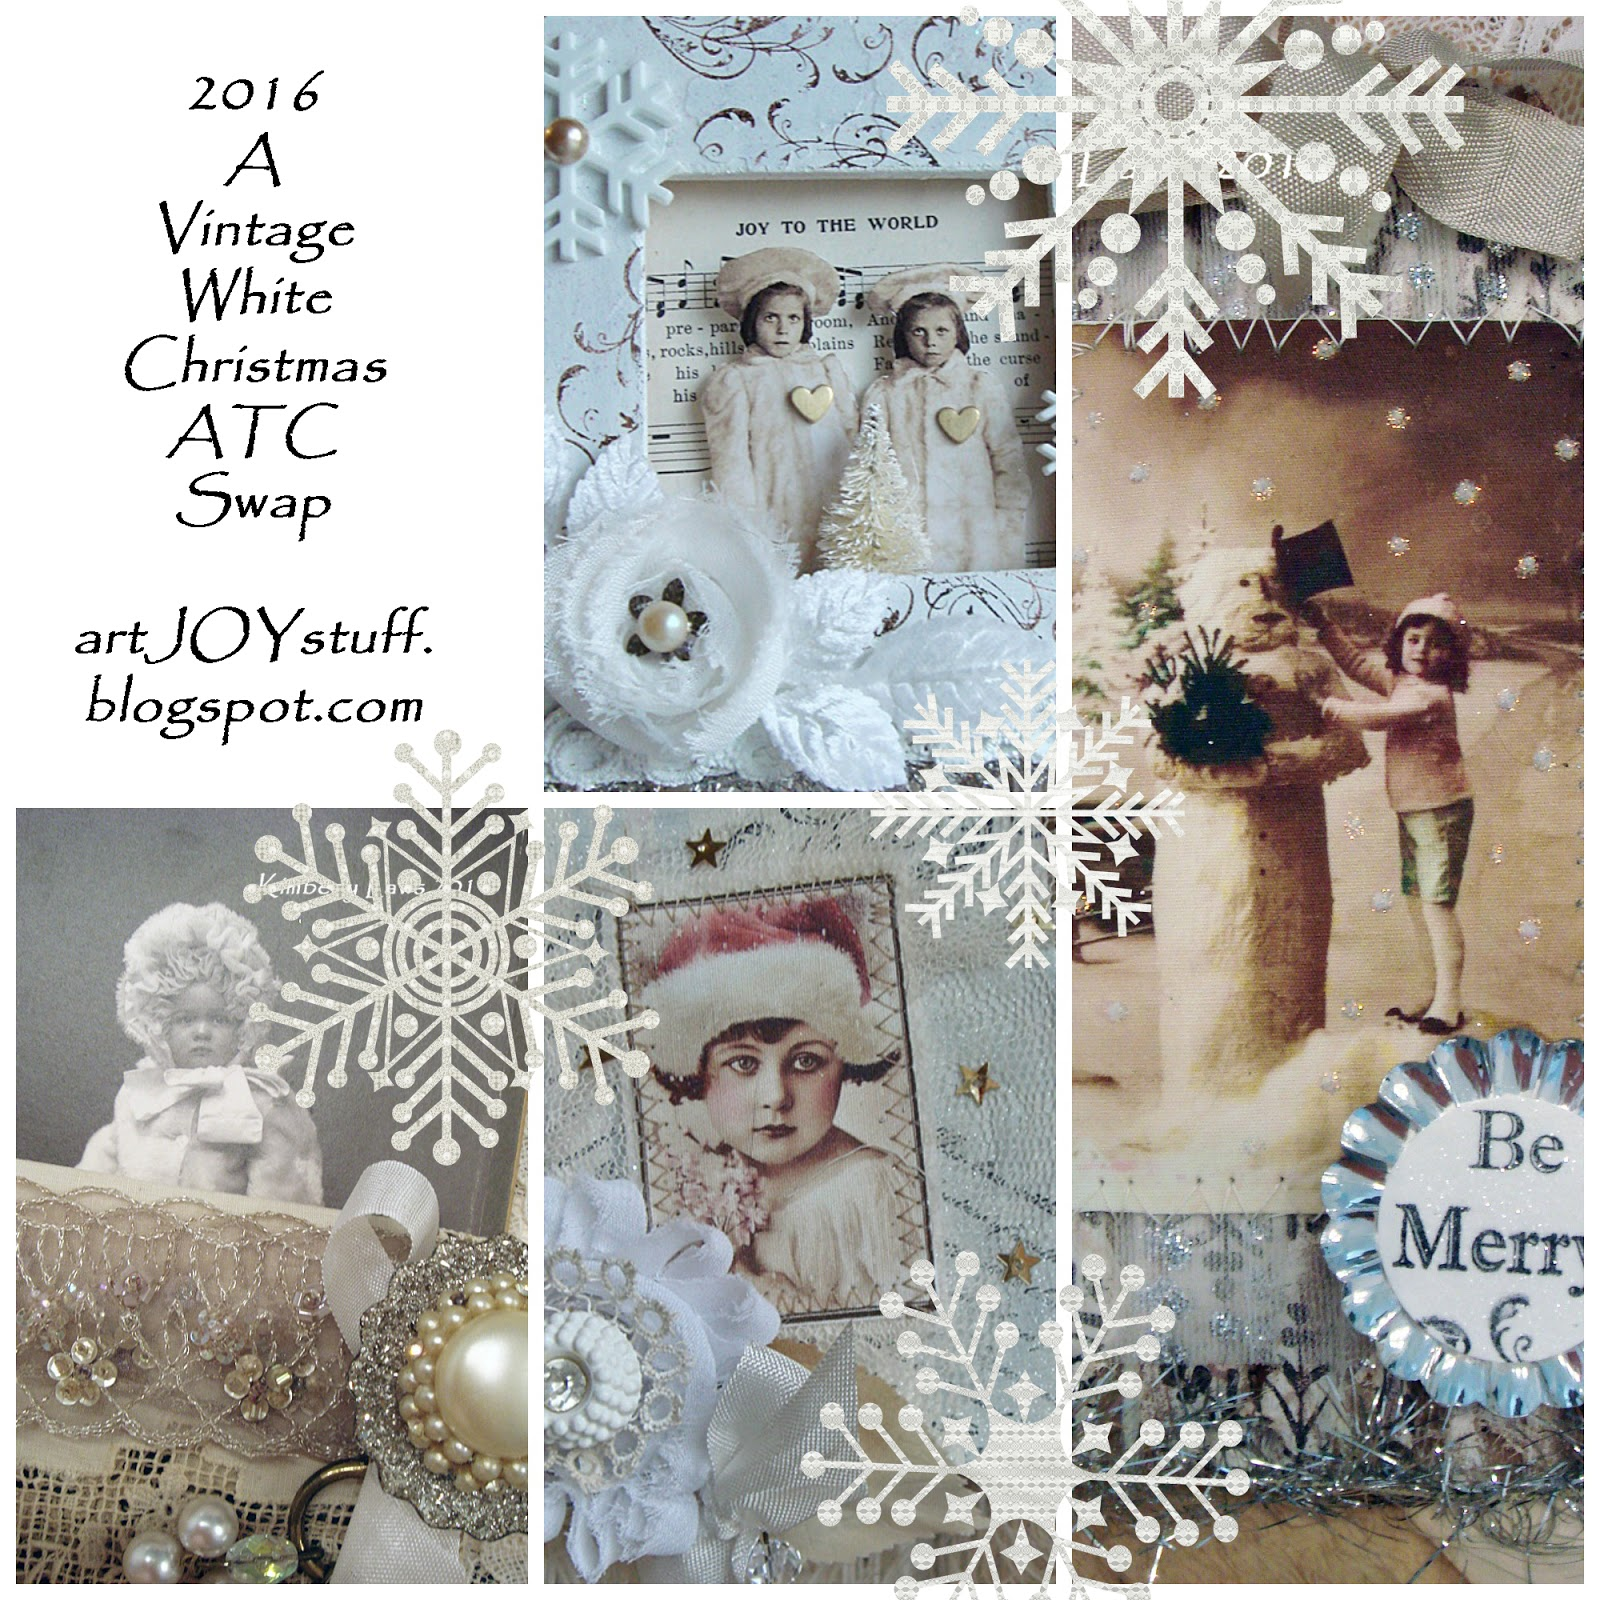 White Christmas ATC Swap 2016